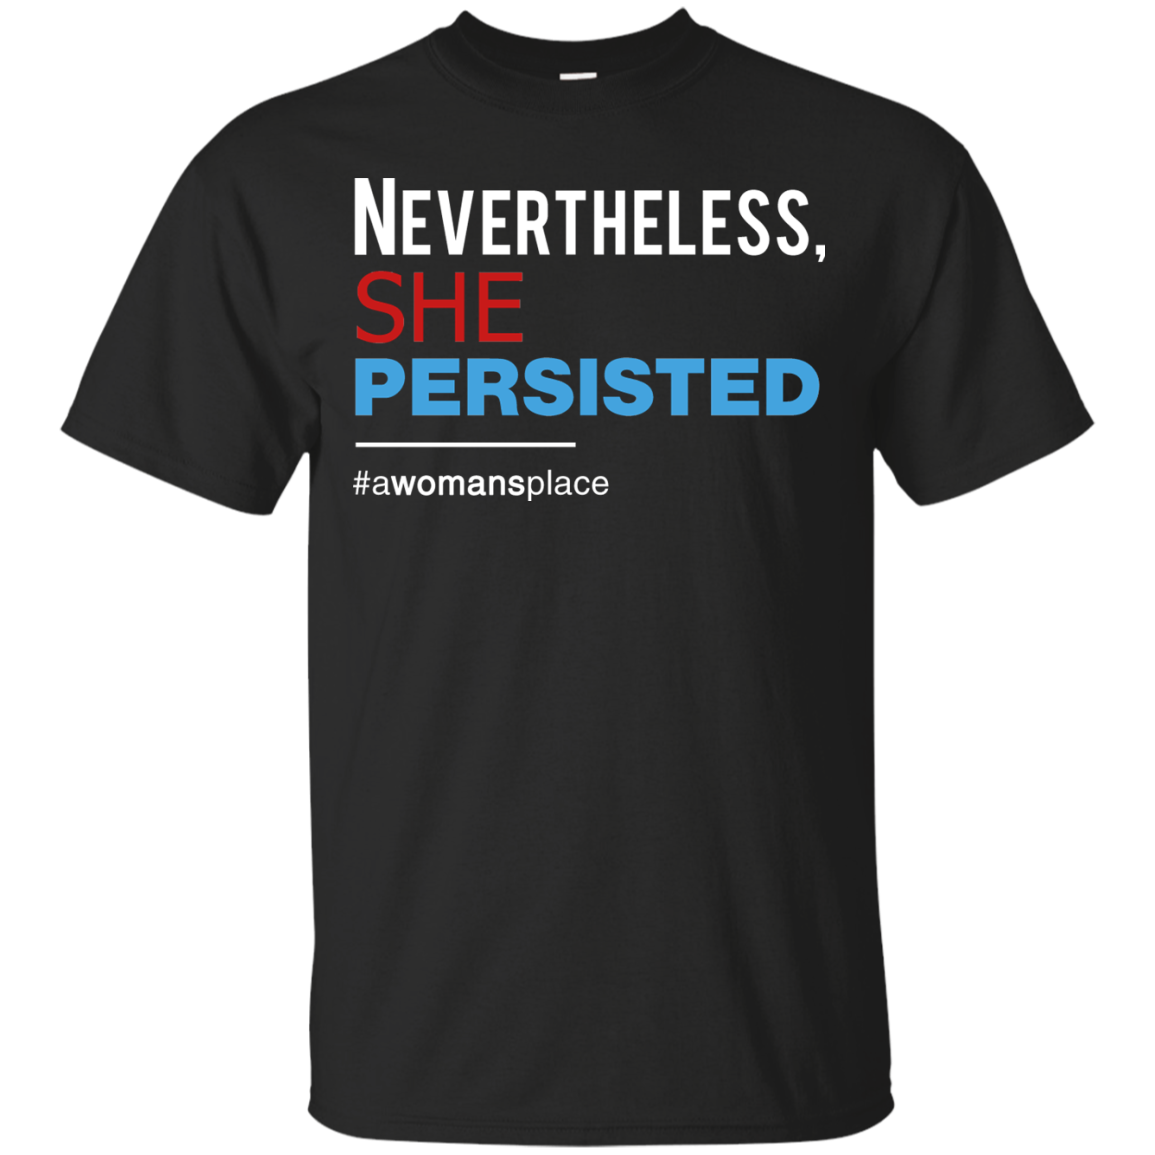 She Persisted tshirt, Resist Shirt